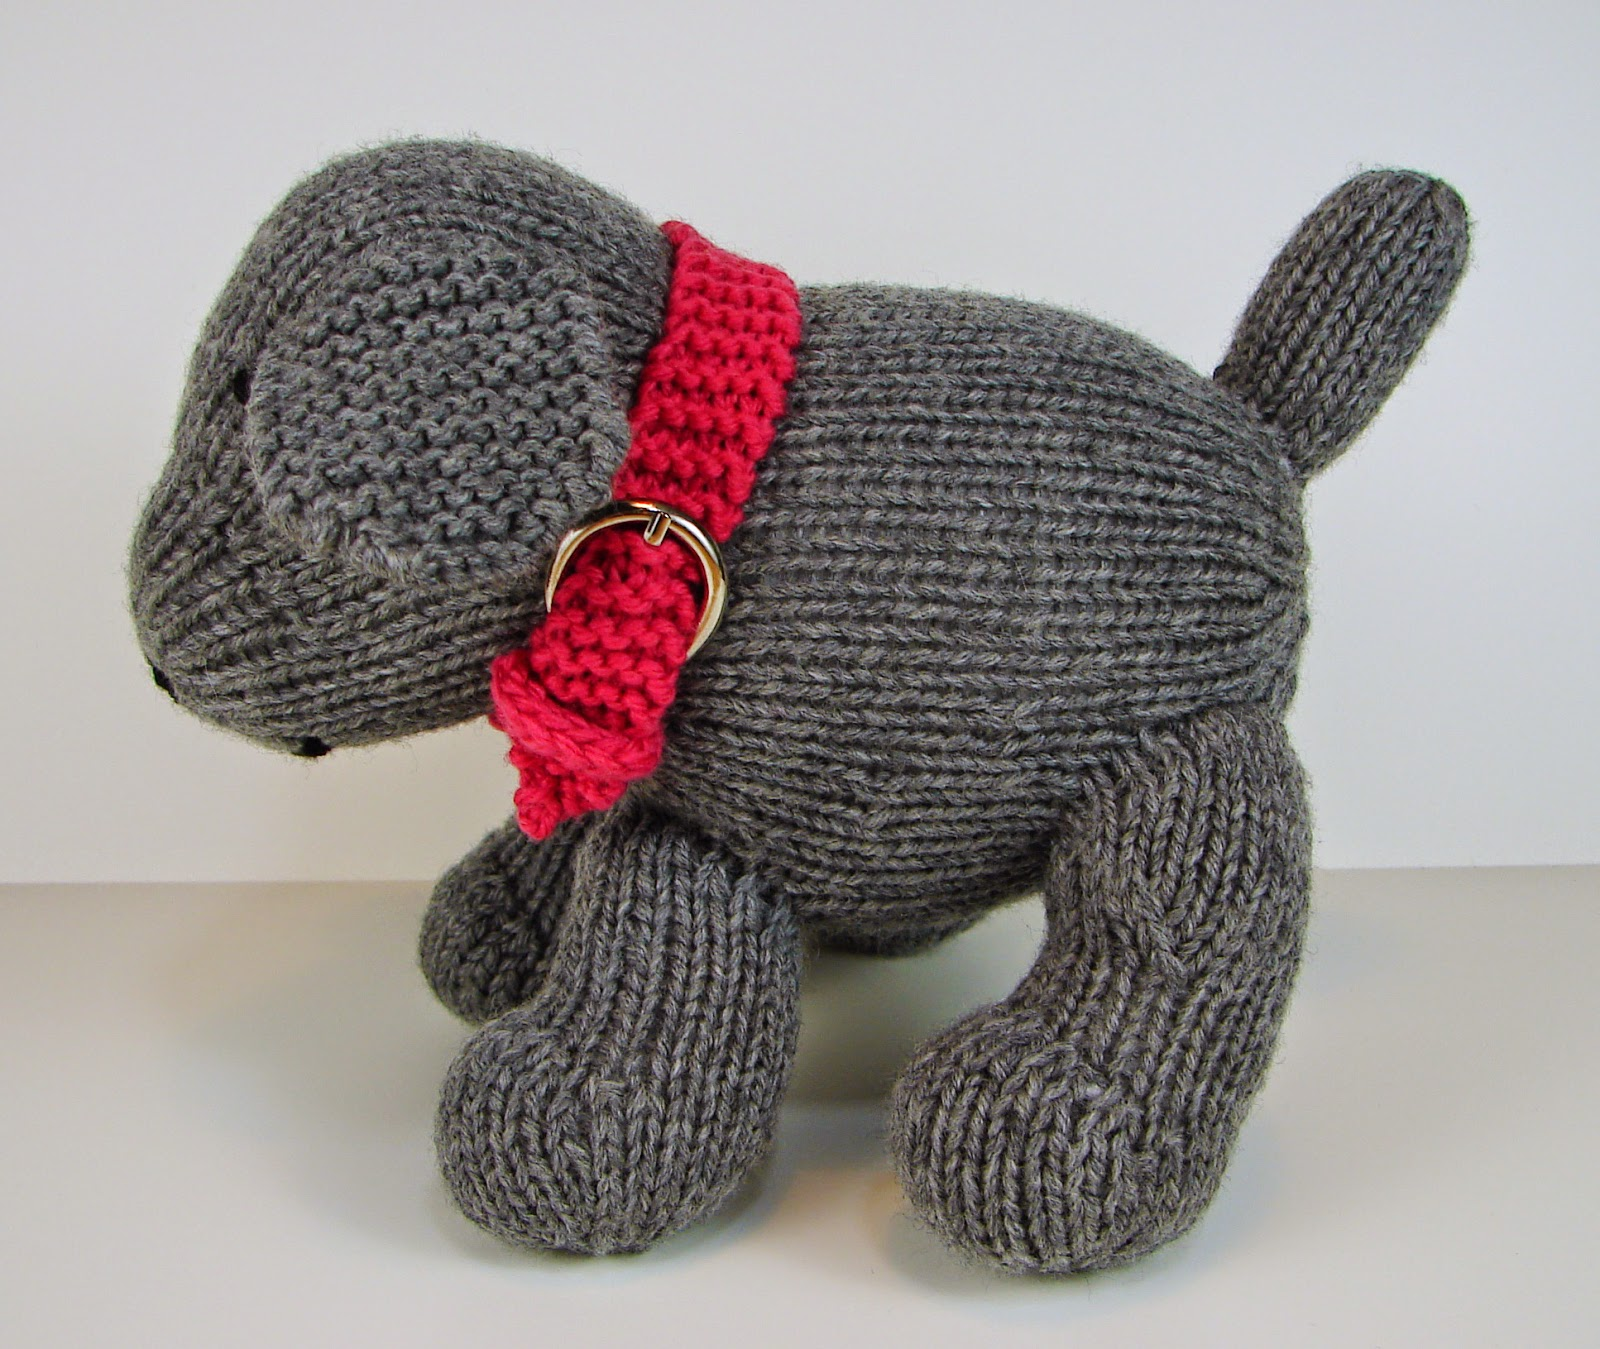 Knitting Patterns For Dogs Toys : Auntie Ems Studio: Puppy Dog Playset Pattern now available!